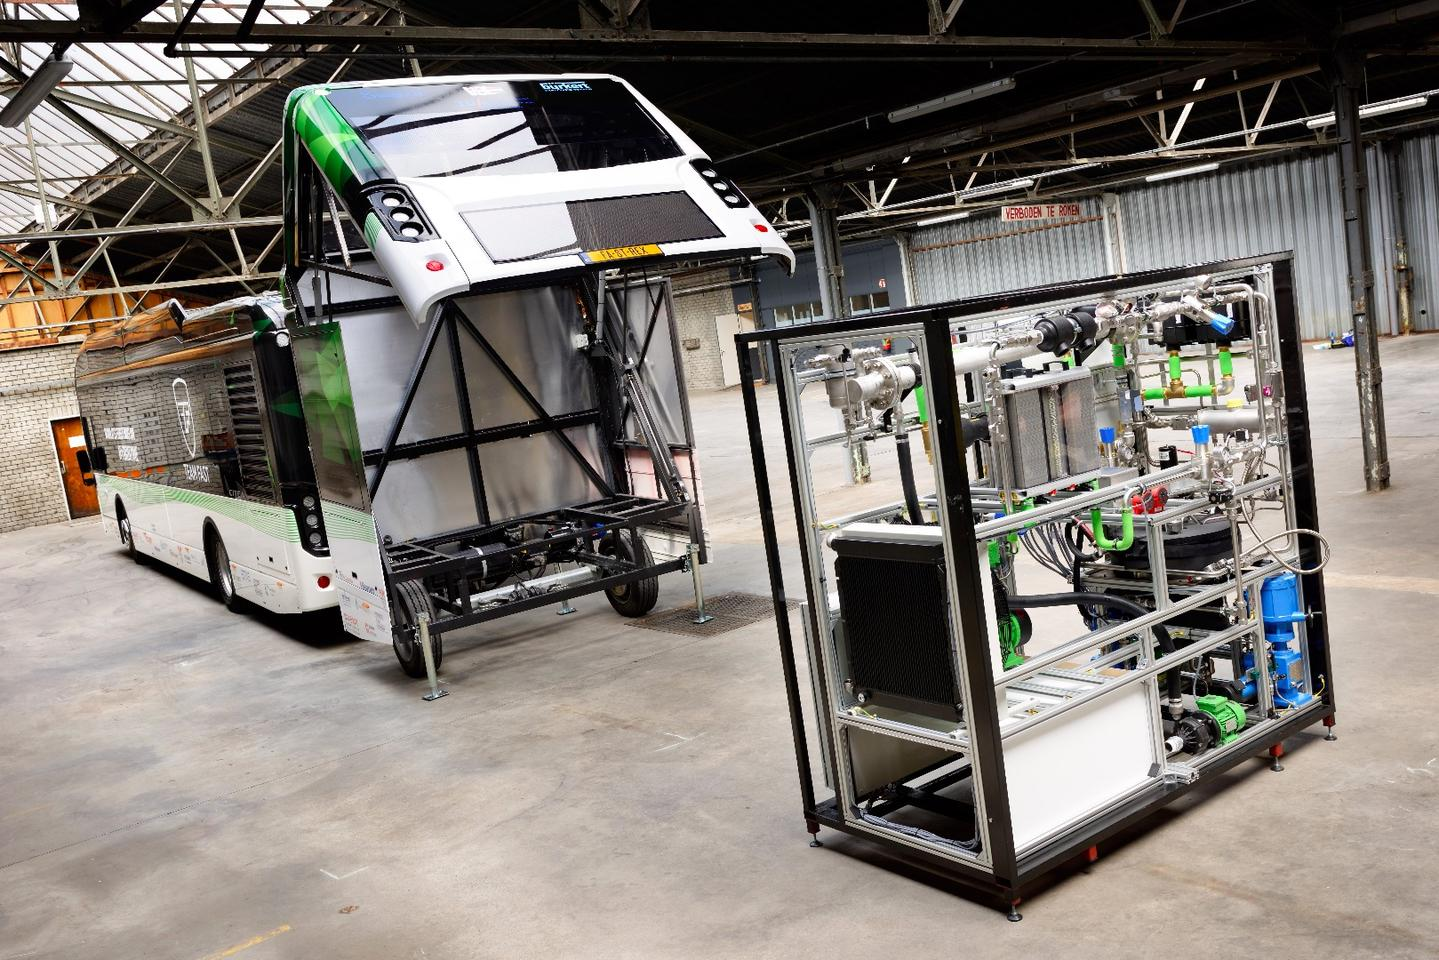 Formic Acid Joins The List Of Alternative Fuels Being Put To The Test